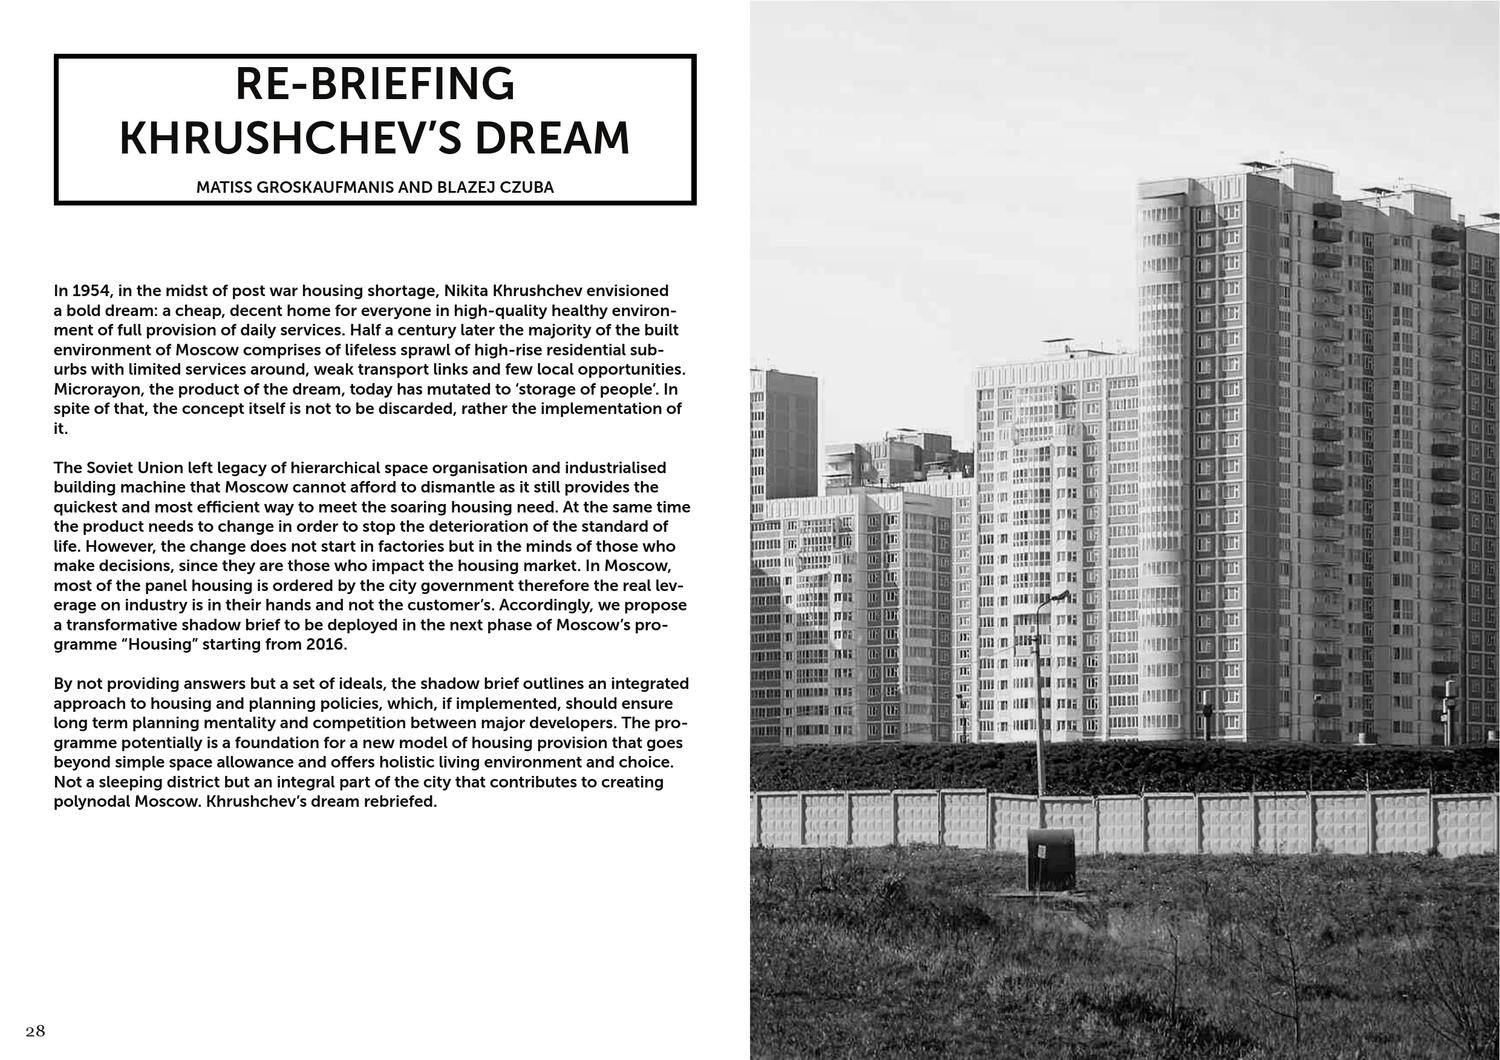 The layout of the Khrushchev: typical differences, features and options for redevelopment